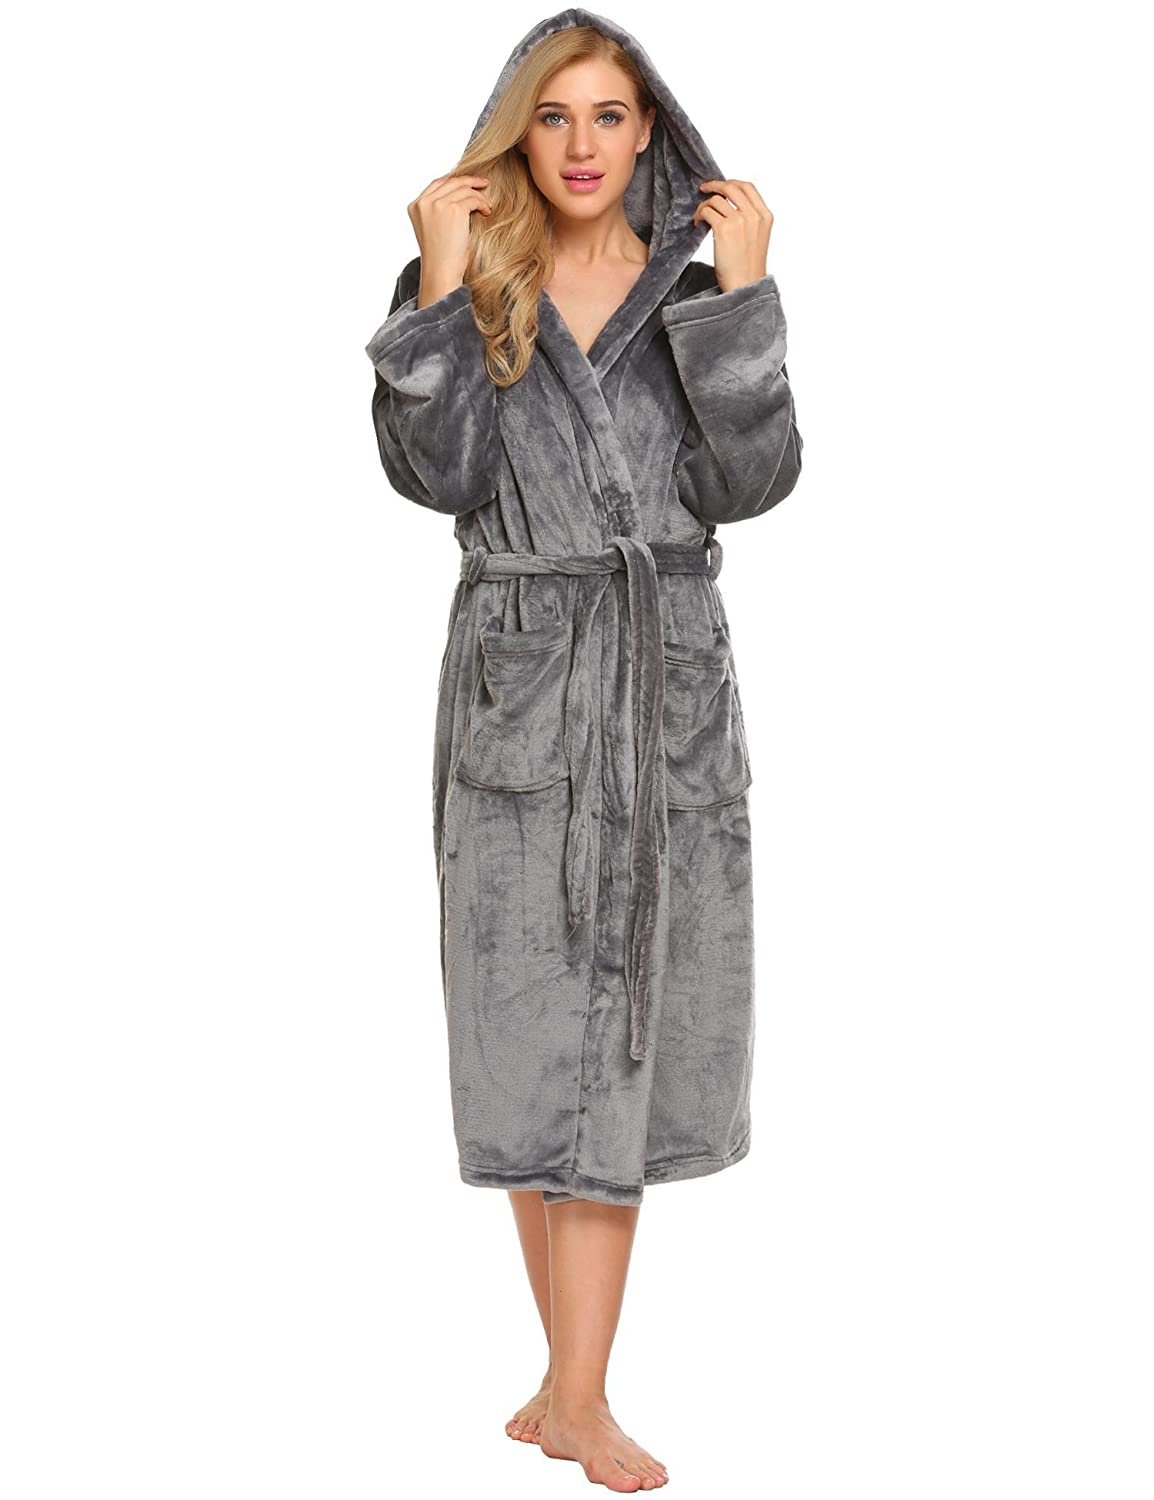 4ffaf01ffc Ekouaer Women Fleece Robe Hooded Bathrobe Long Plush Microfiber Sleepwear  with Pockets S-XL at Amazon Women s Clothing store